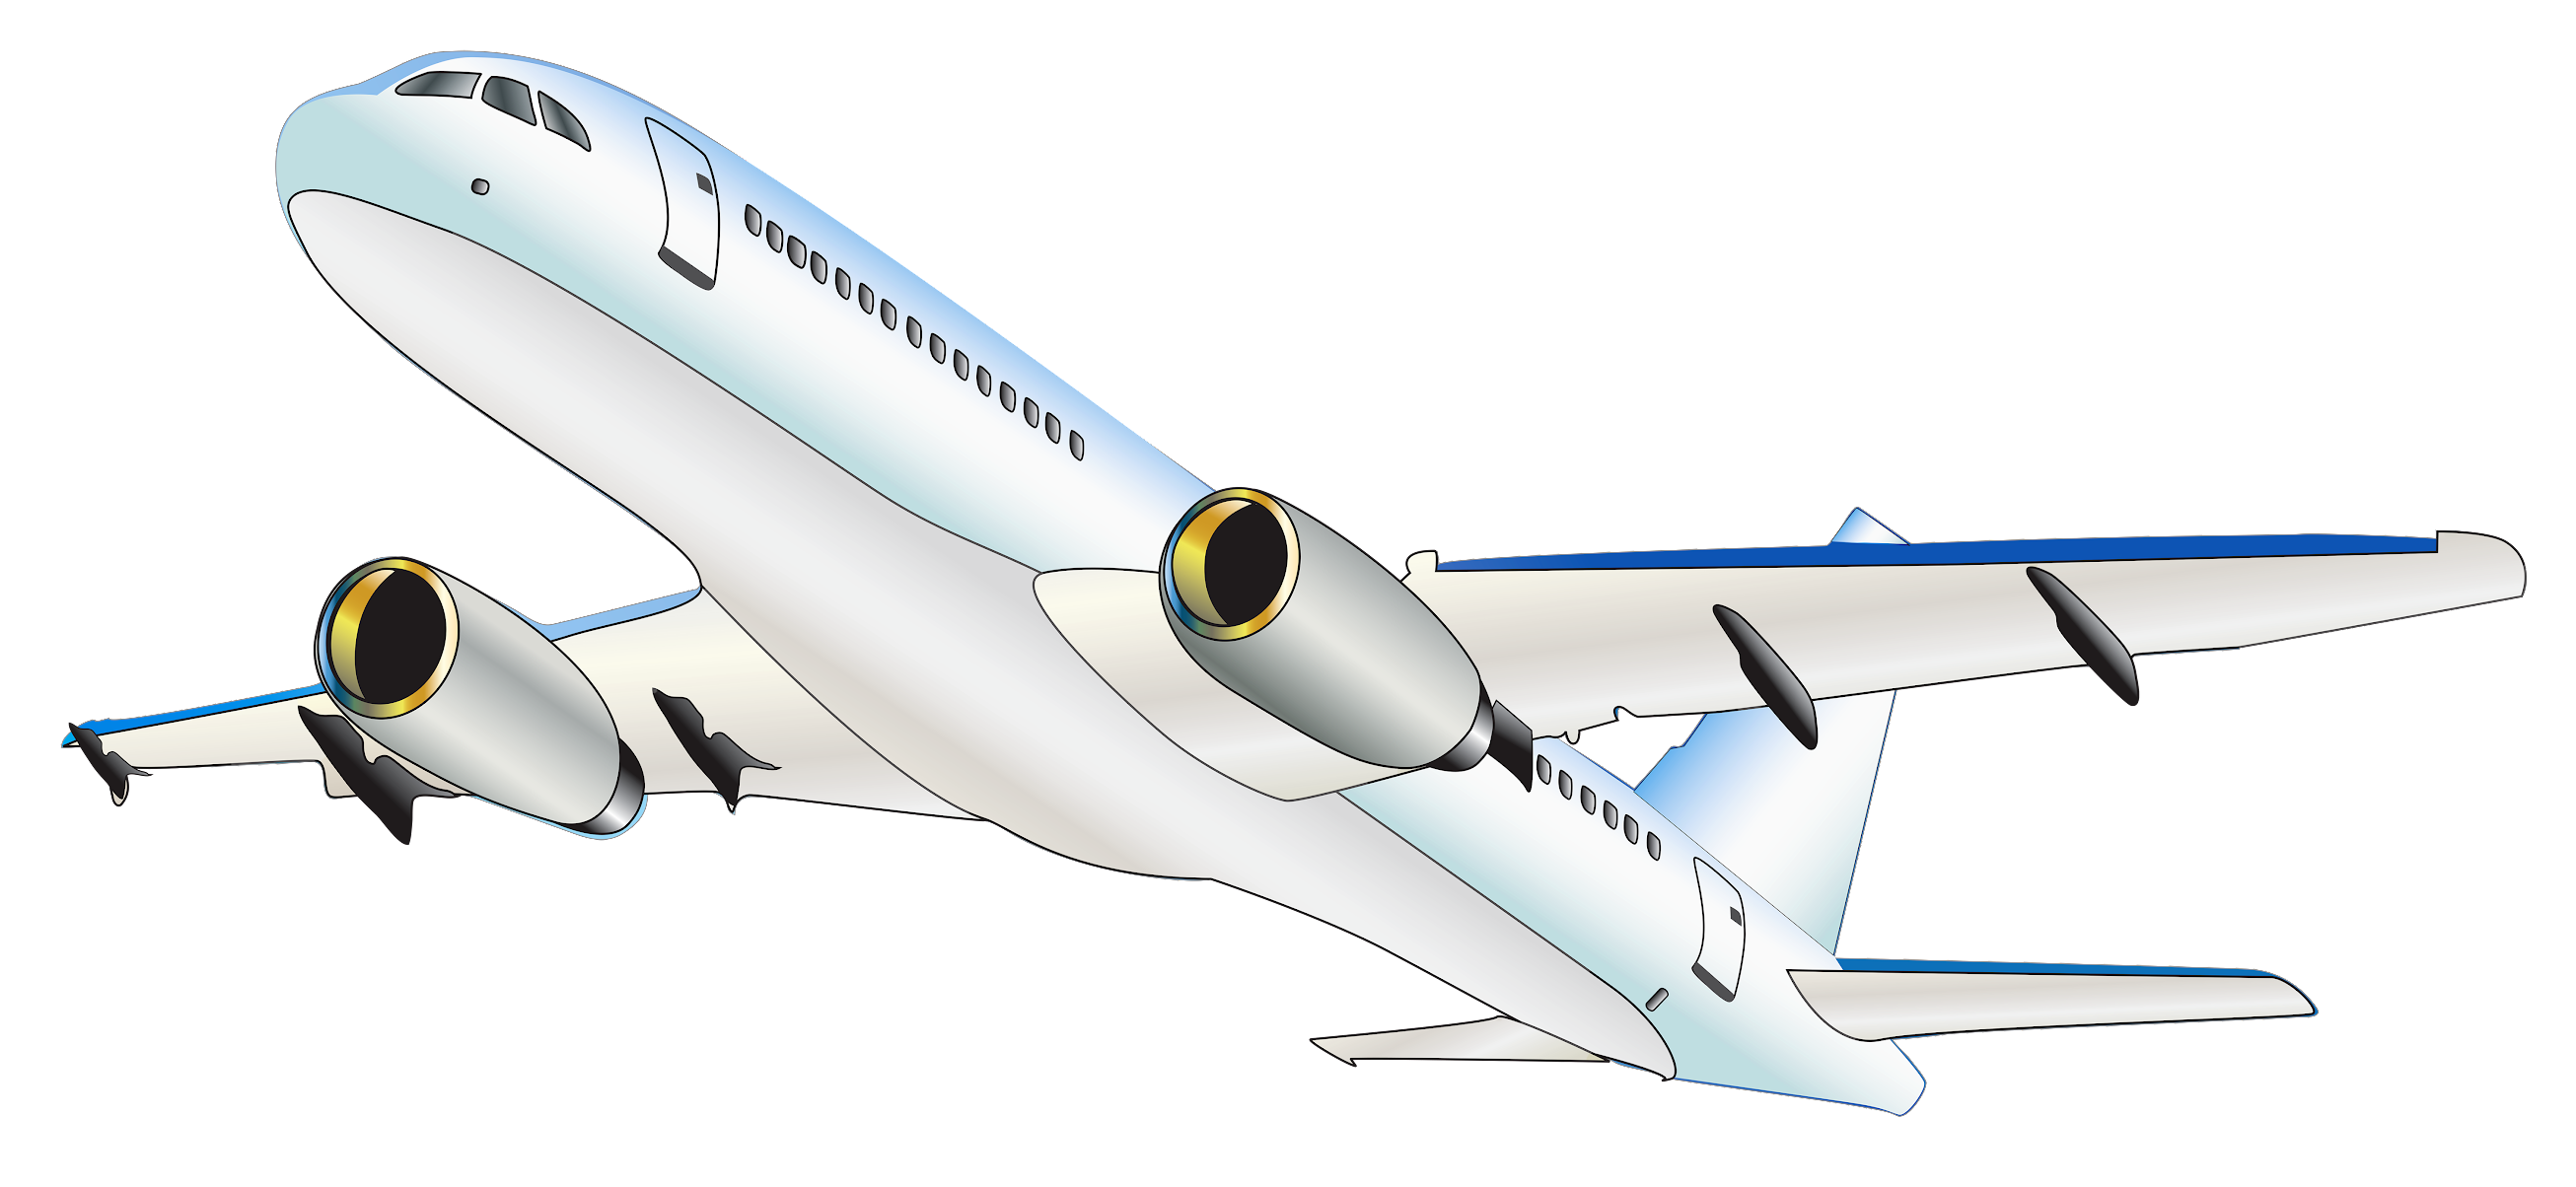 blue, white, service, plan, mode Of Transport, airplane, transport, narrowbody Aircraft, propeller, radio Controlled Aircraft, radio Controlled Toy, royalty Payment, wide Body Aircraft, model Aircraft, aerospace Engineering, air Transport, air Travel, aircraft, aircraft Engine, airline, airliner, aviation, avion De Transport, boeing 767, drawing, flap, fond Blanc, wing, png,transparent,free download